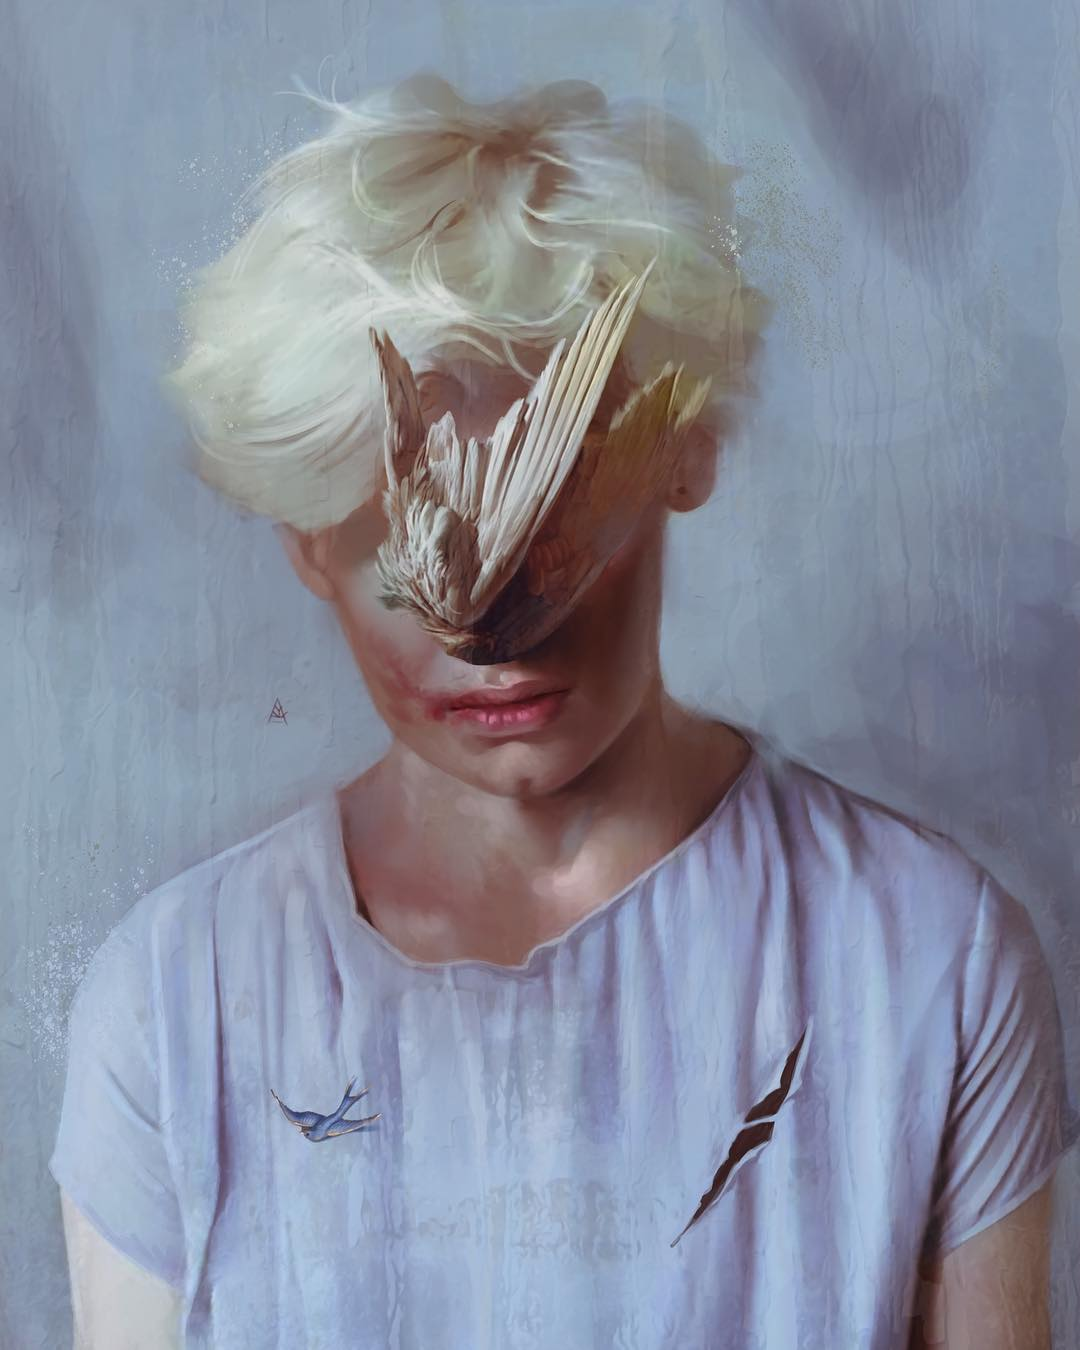 Beautiful Surreal Figurative Artwork by Aykut Aydogdu